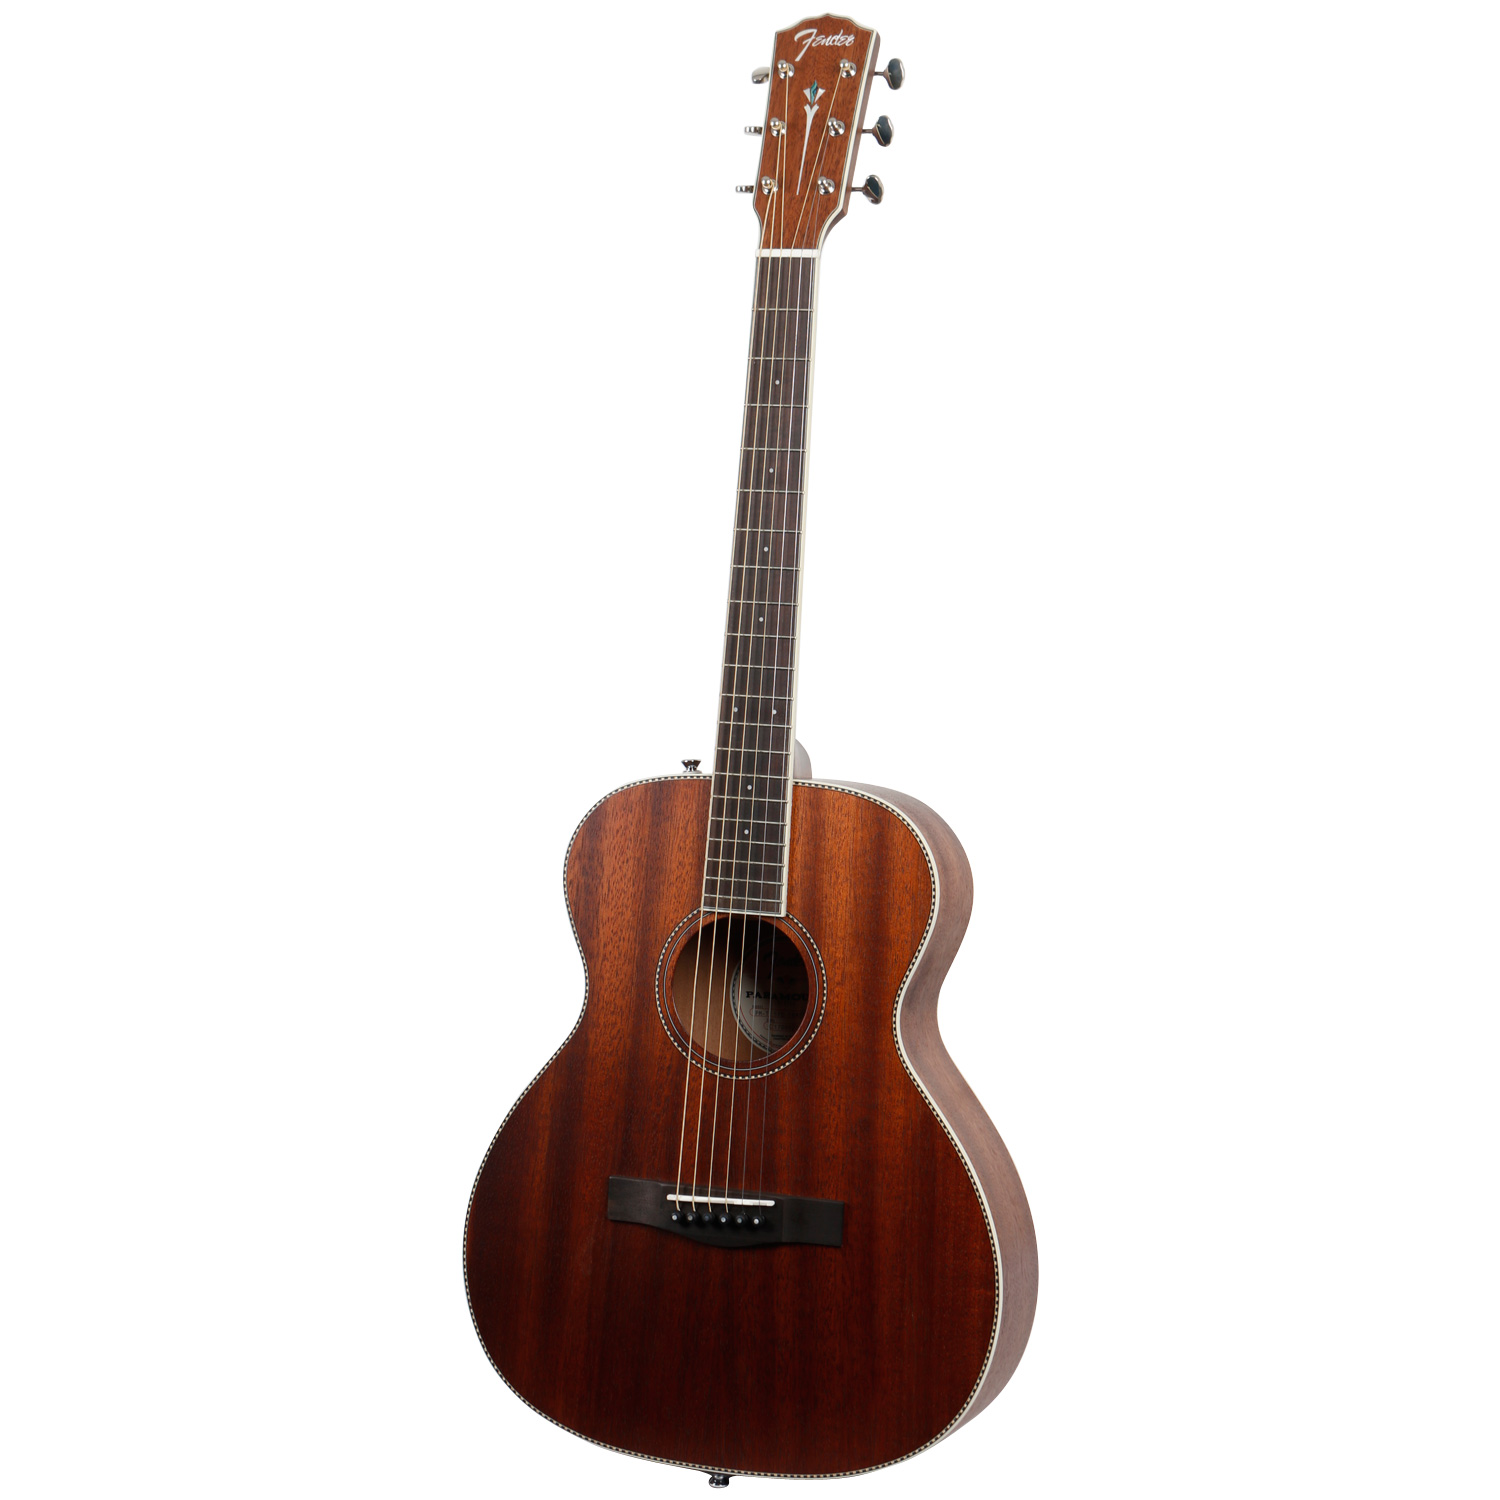 Fender Paramount PM TE Standard Travel All Mahogany travel guitar